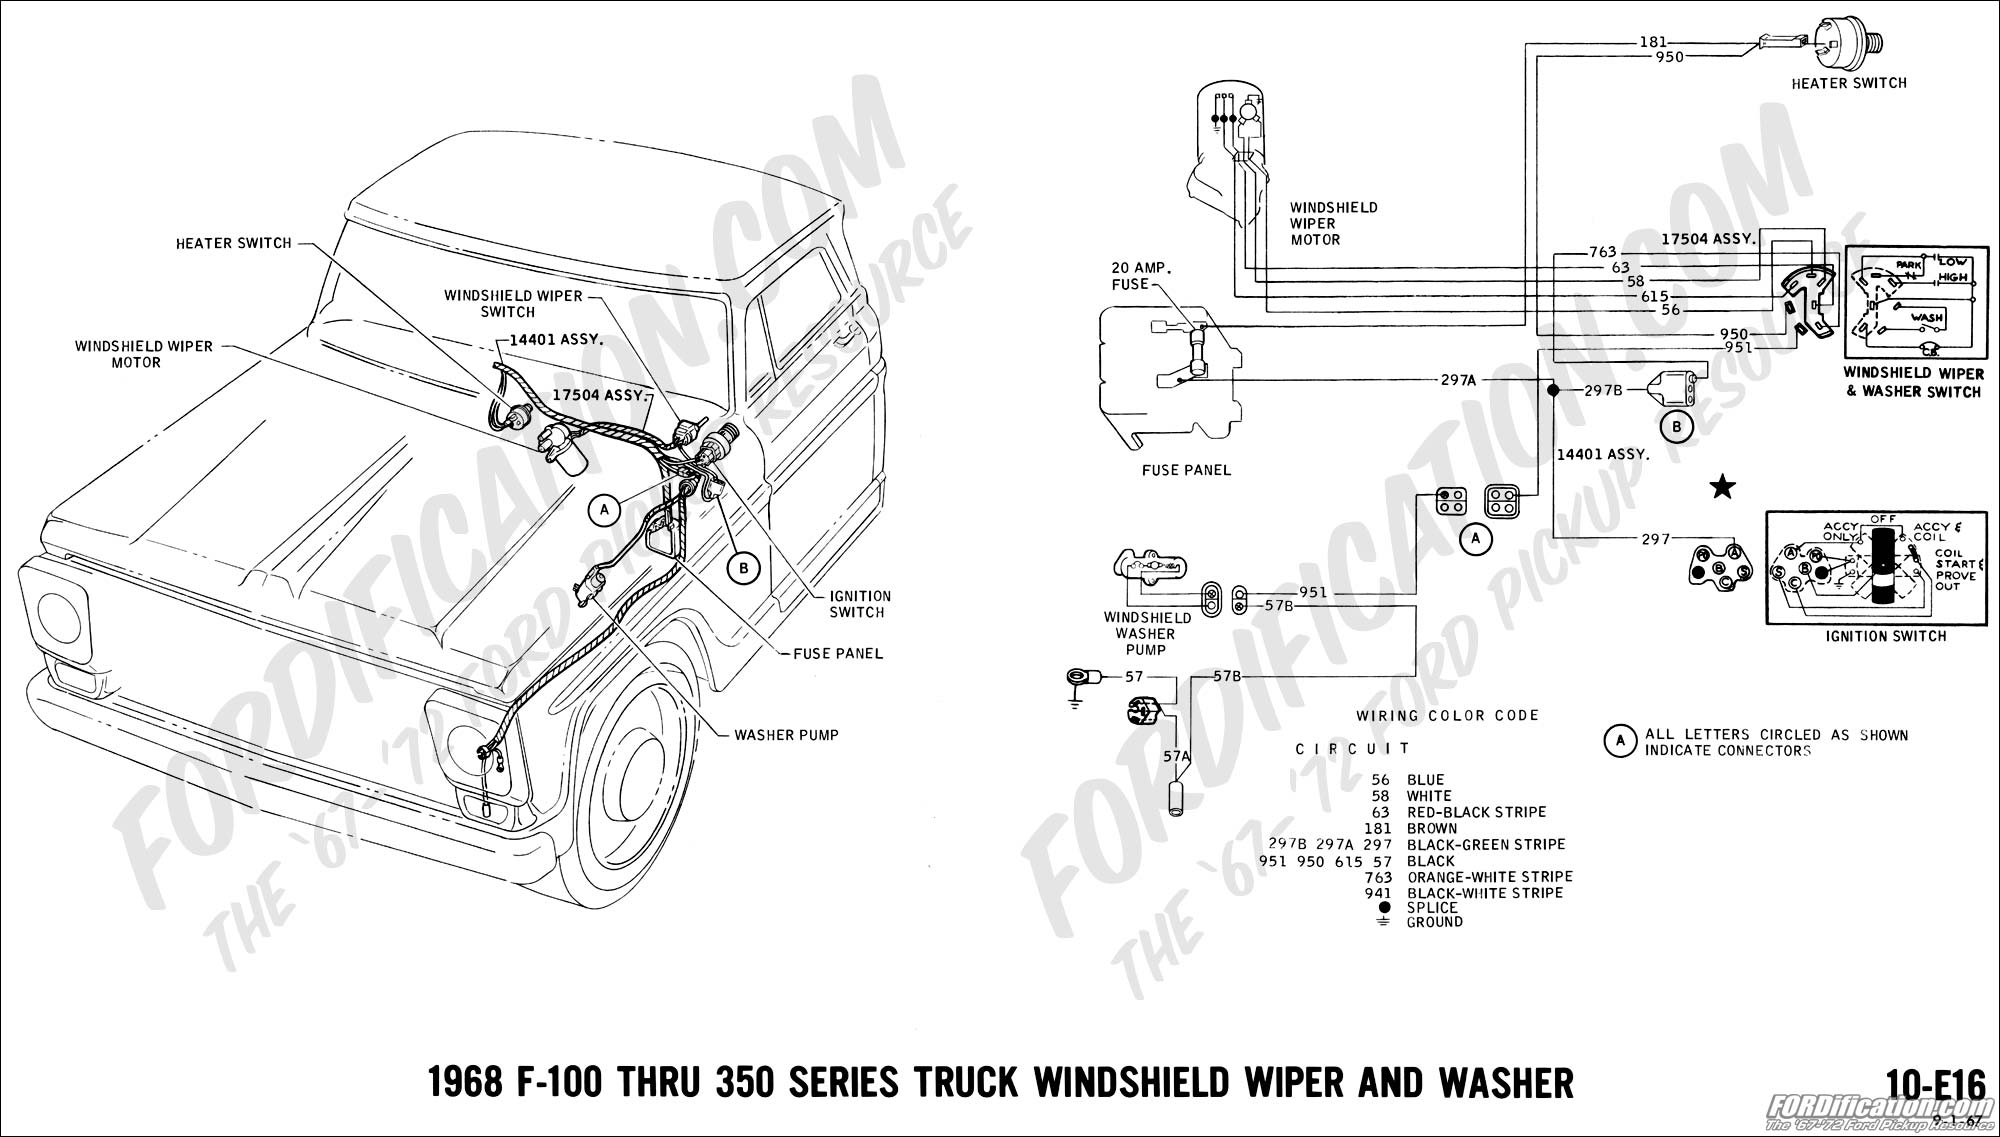 Ford Thunderbird 1961 1962 Windows also 65 Mustang Headlight Wiring Diagram Simonand 100 2001 Ford 1965 additionally How To Wire A Windshield Wiper Motor likewise Schematics c as well 1966 Thunderbird Wiring Diagram. on 1969 ford galaxie wiring diagram